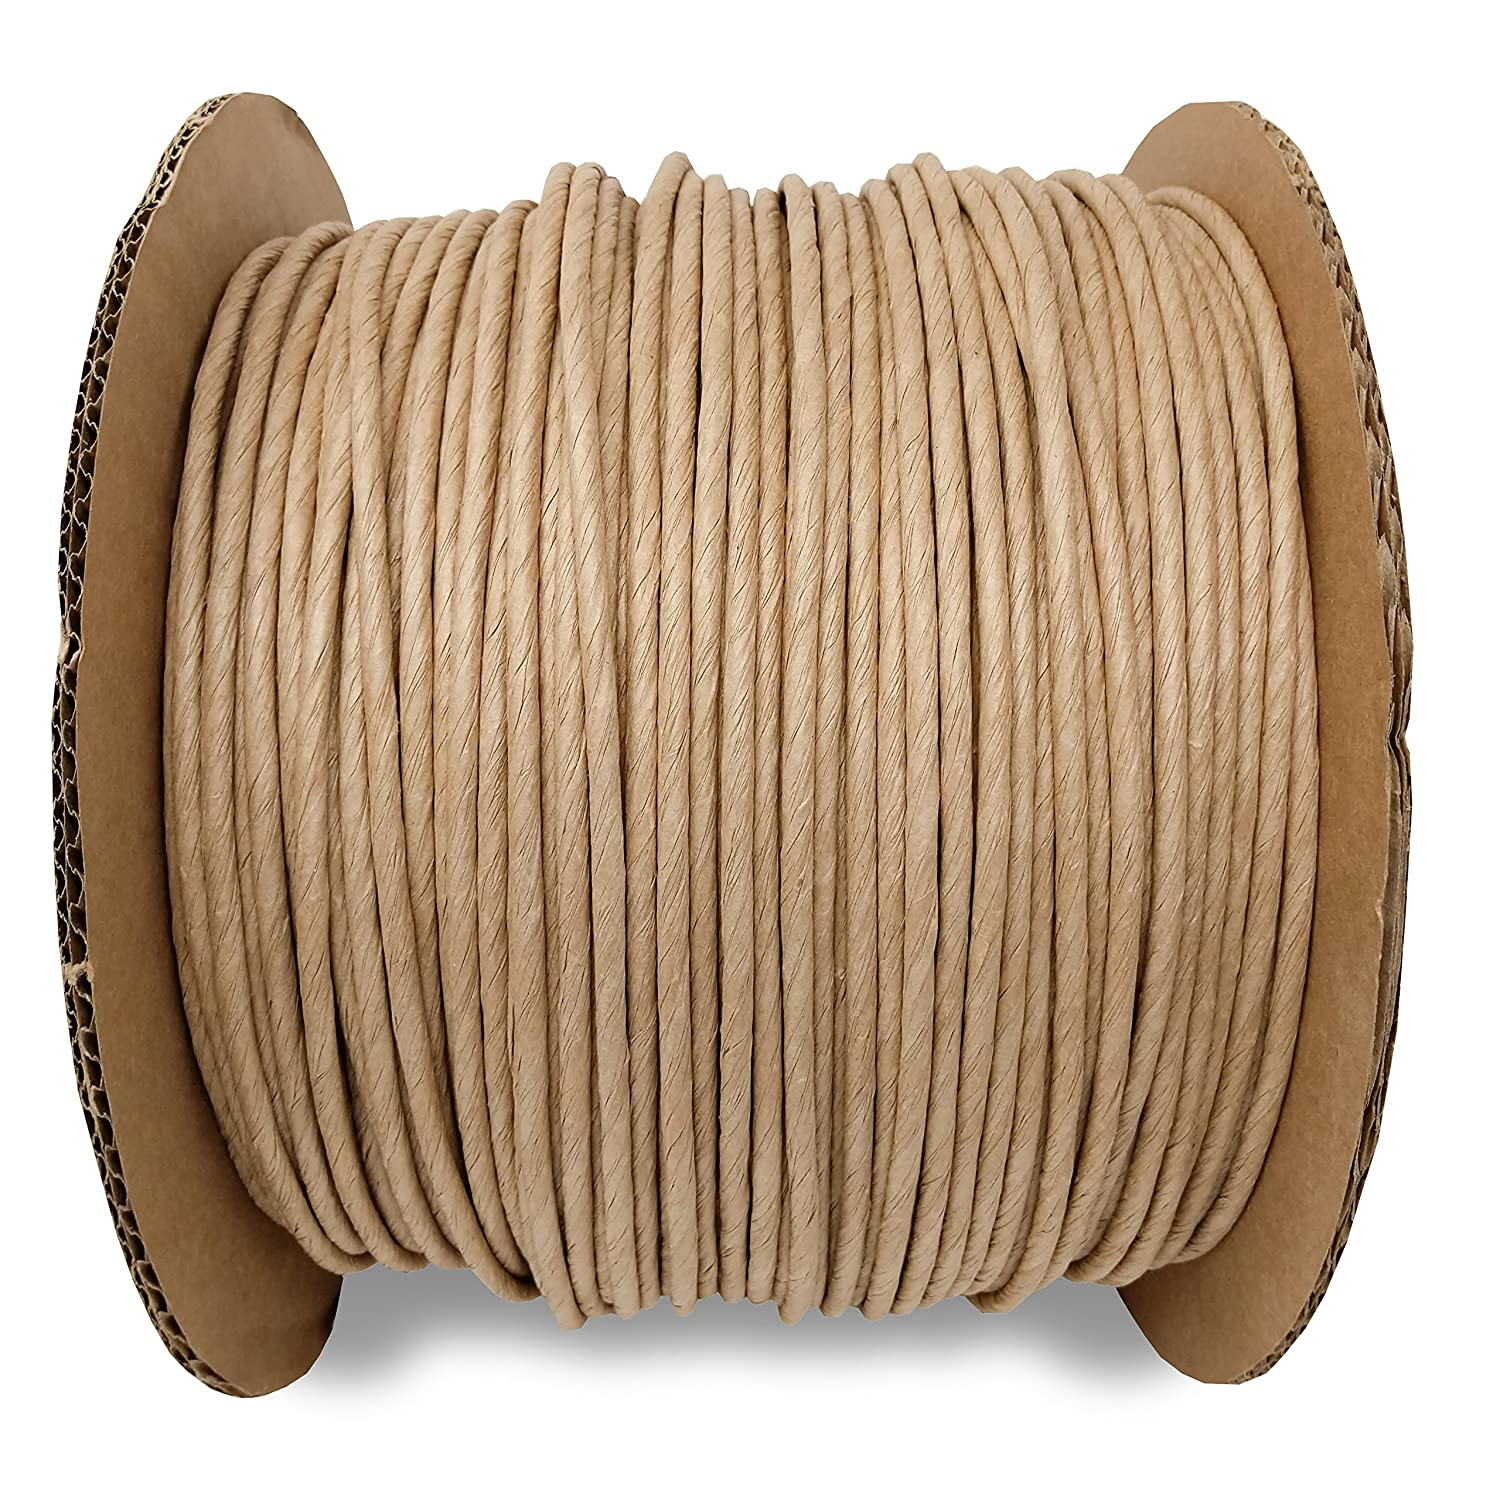 5/32 Fiber Paper Rush Spool Reel, 1,700ft Kraft Brown for Craft Weaving Chairs Ladderbacks Wholesale Upholstery Supply